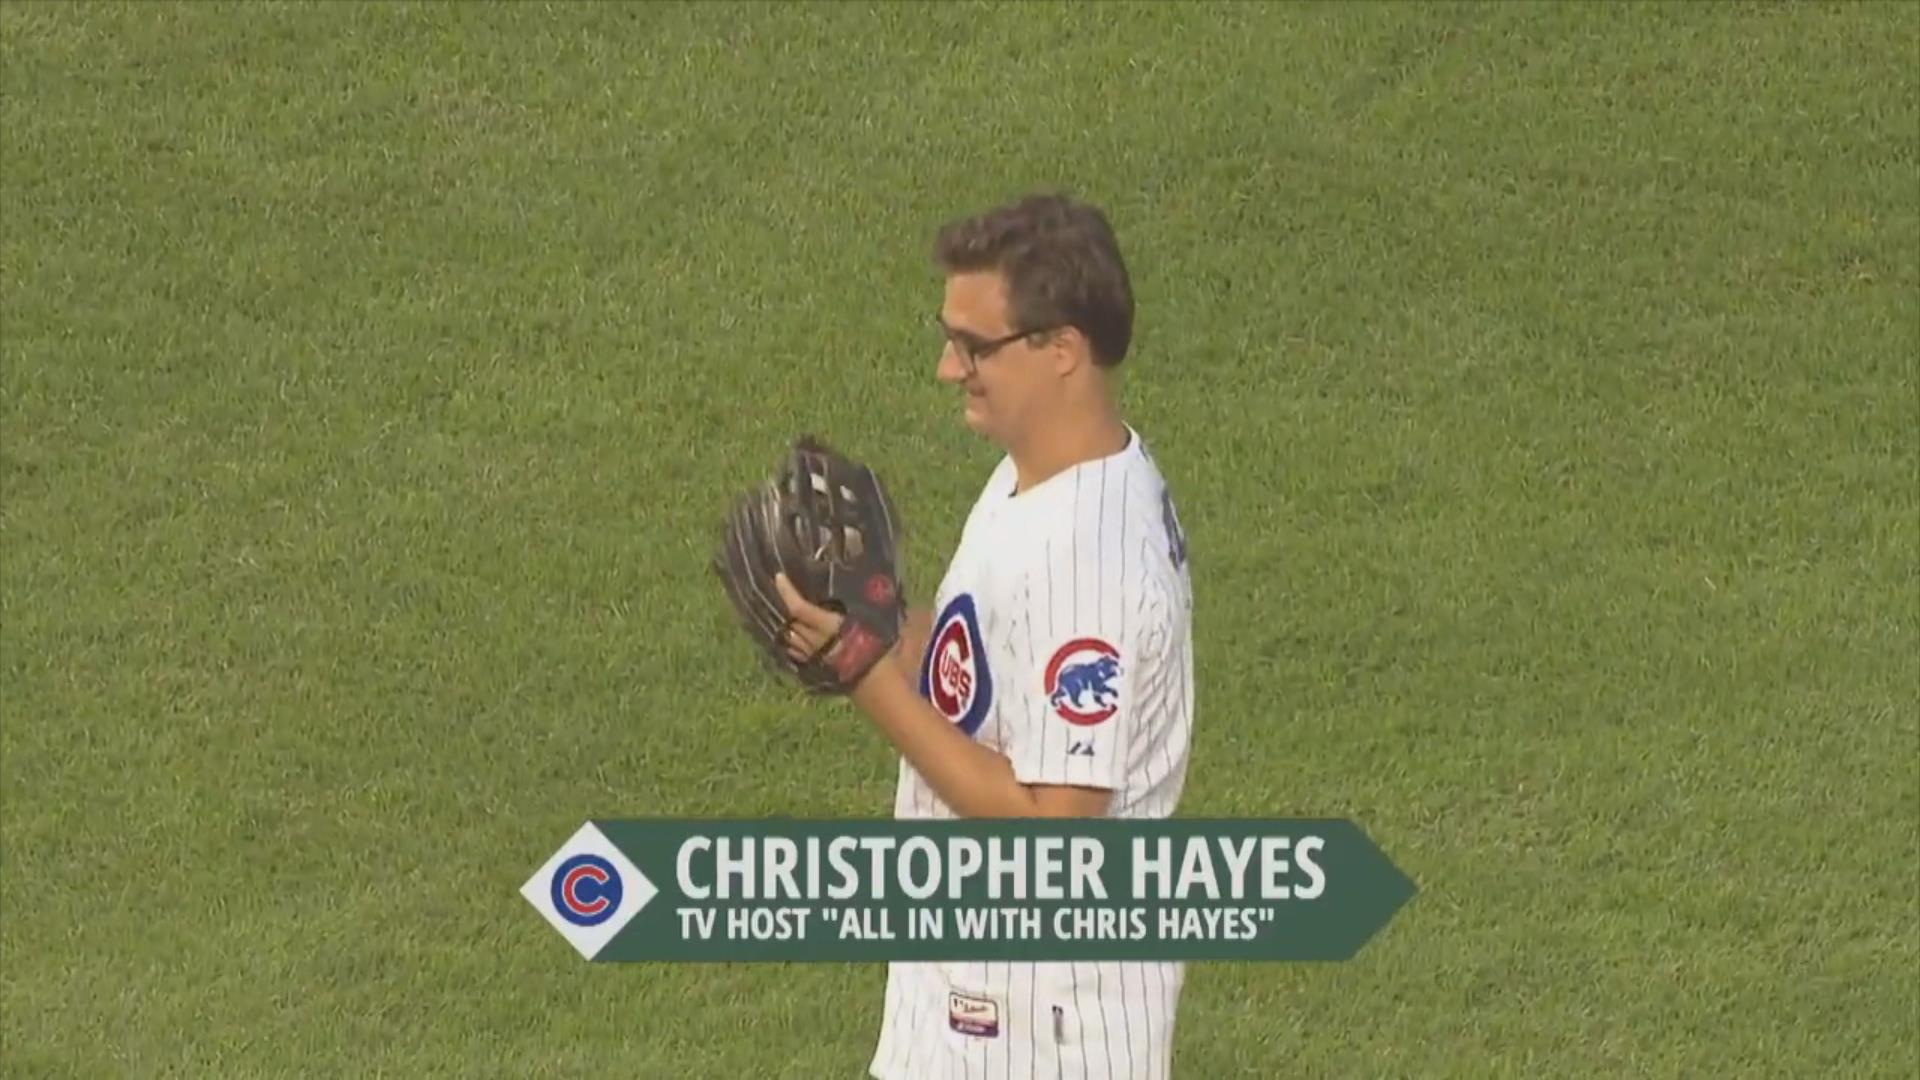 Would Chris Hayes get 1 hit in a full...